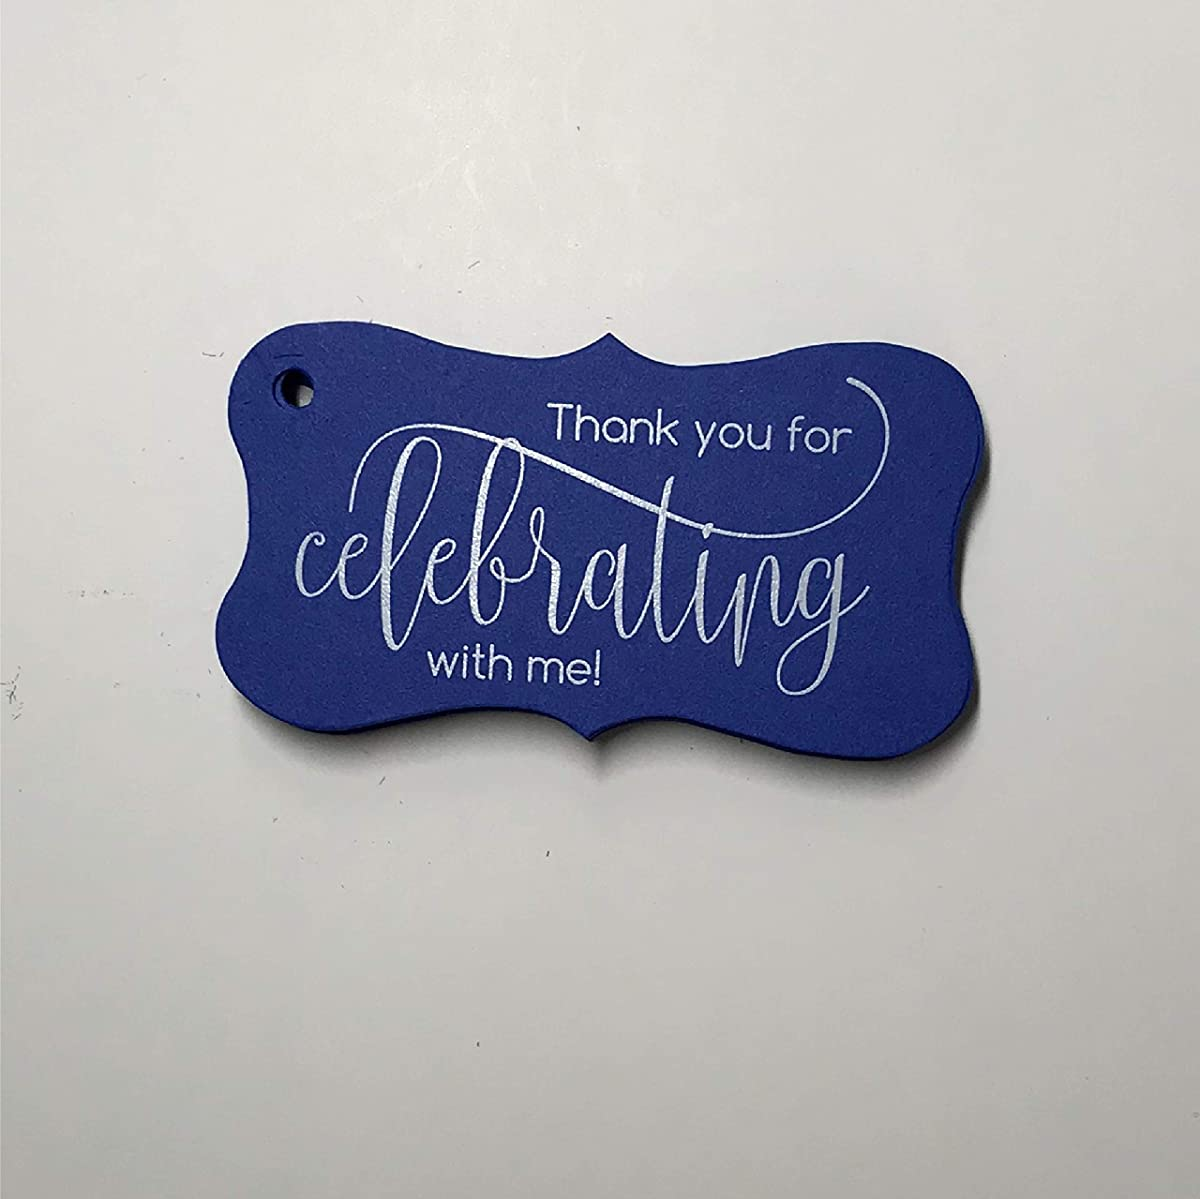 Thank you for Celebrating with me Tags, Birthday Favor Tags, Graduation Favor Tags (FR-66-BL)